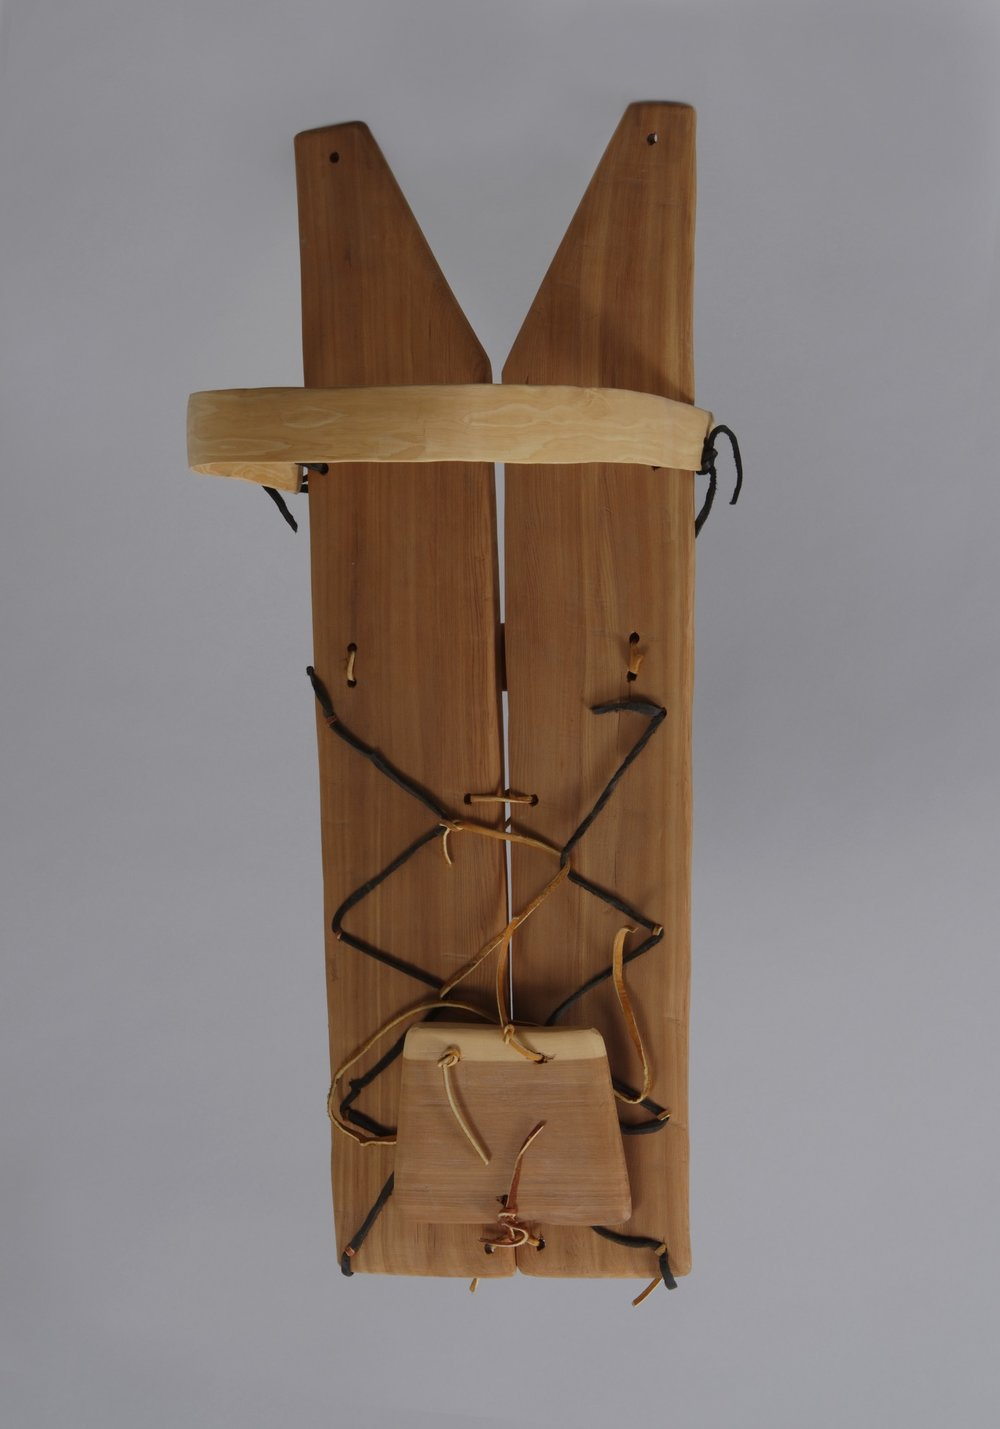 Diné (Navajo), wood cradle board, 1972. Cedar, pine, and leather, 28 3/8 × 10 1/4 × 2 3/4 in. Hood Museum of Art, Dartmouth College: Museum Purchase; 173.4.25448.